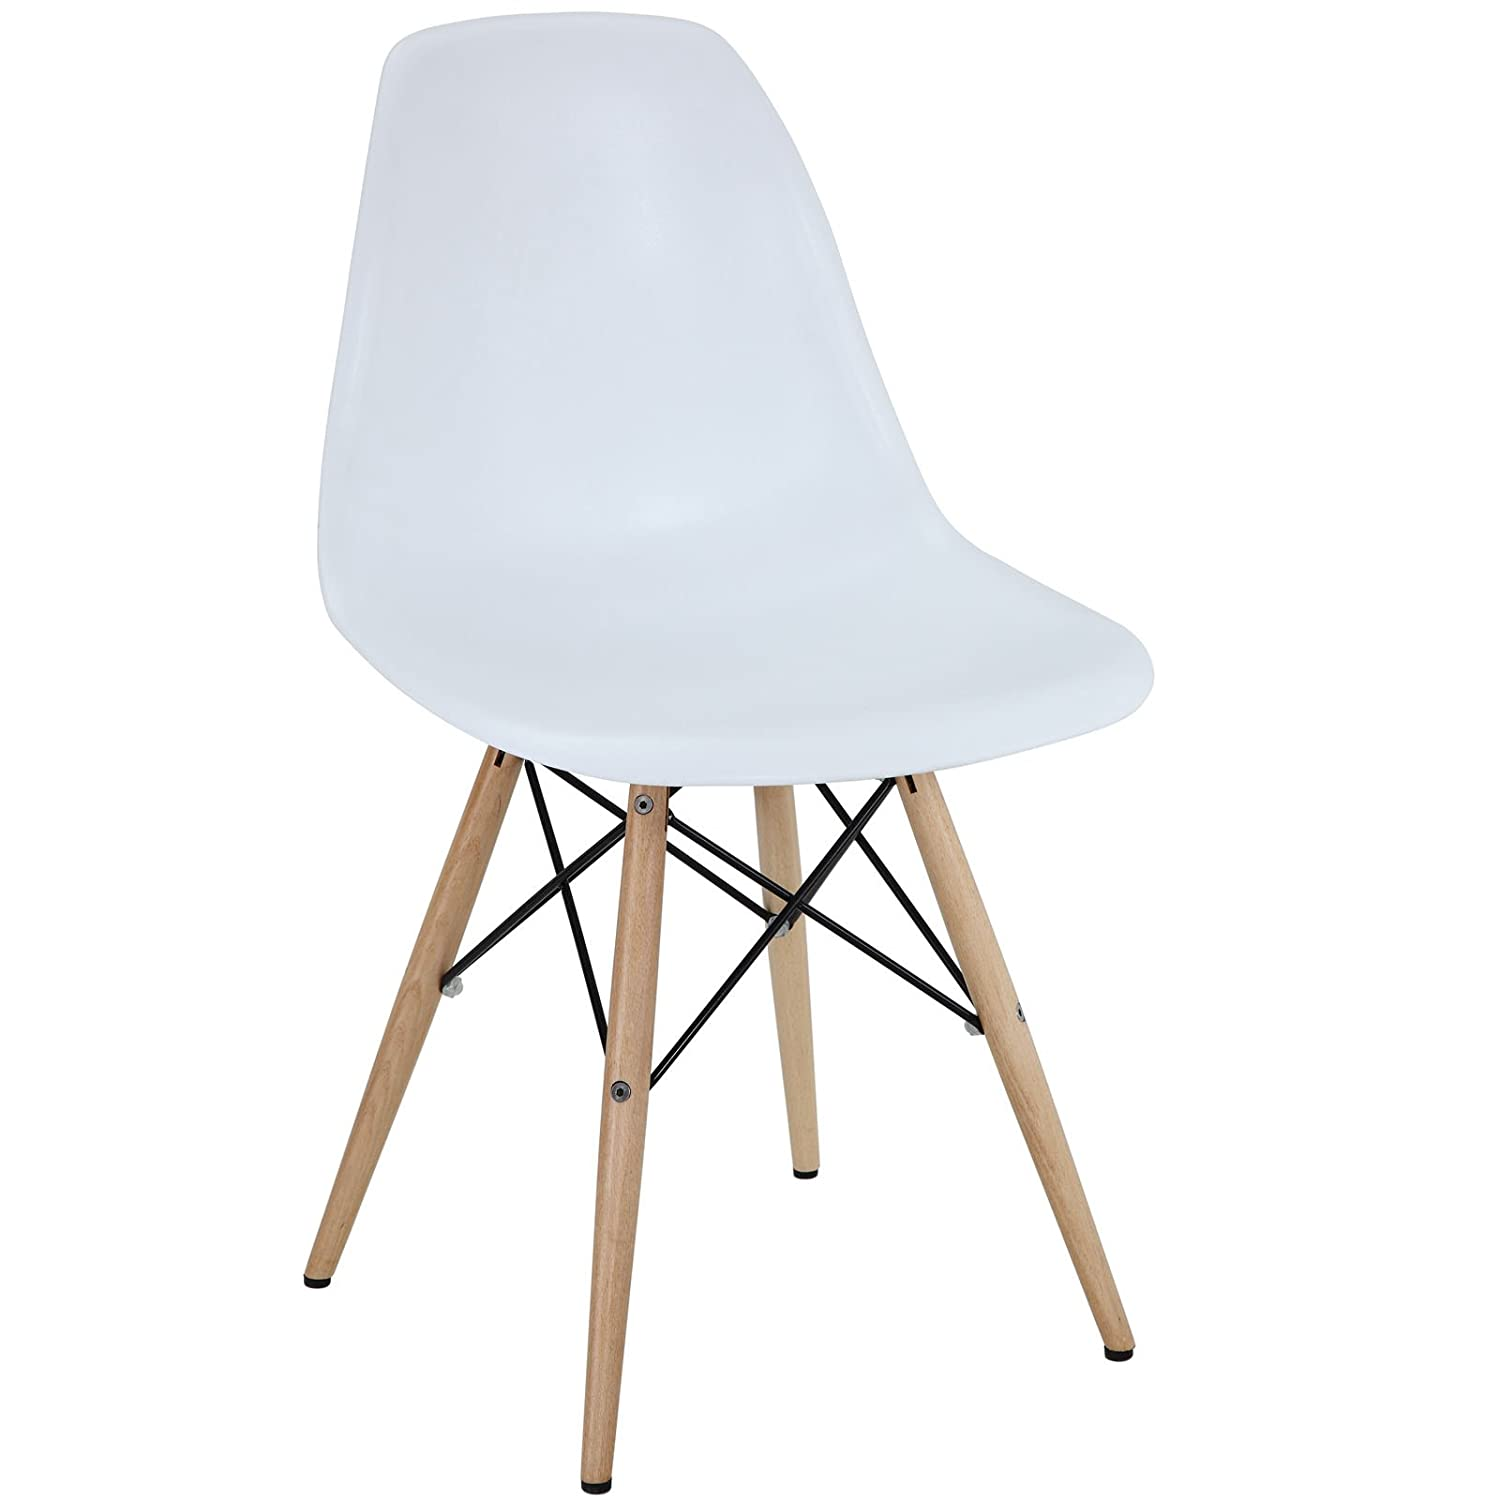 Plastic chair metal legs - Modway Plastic Side Chair In White With Wooden Base